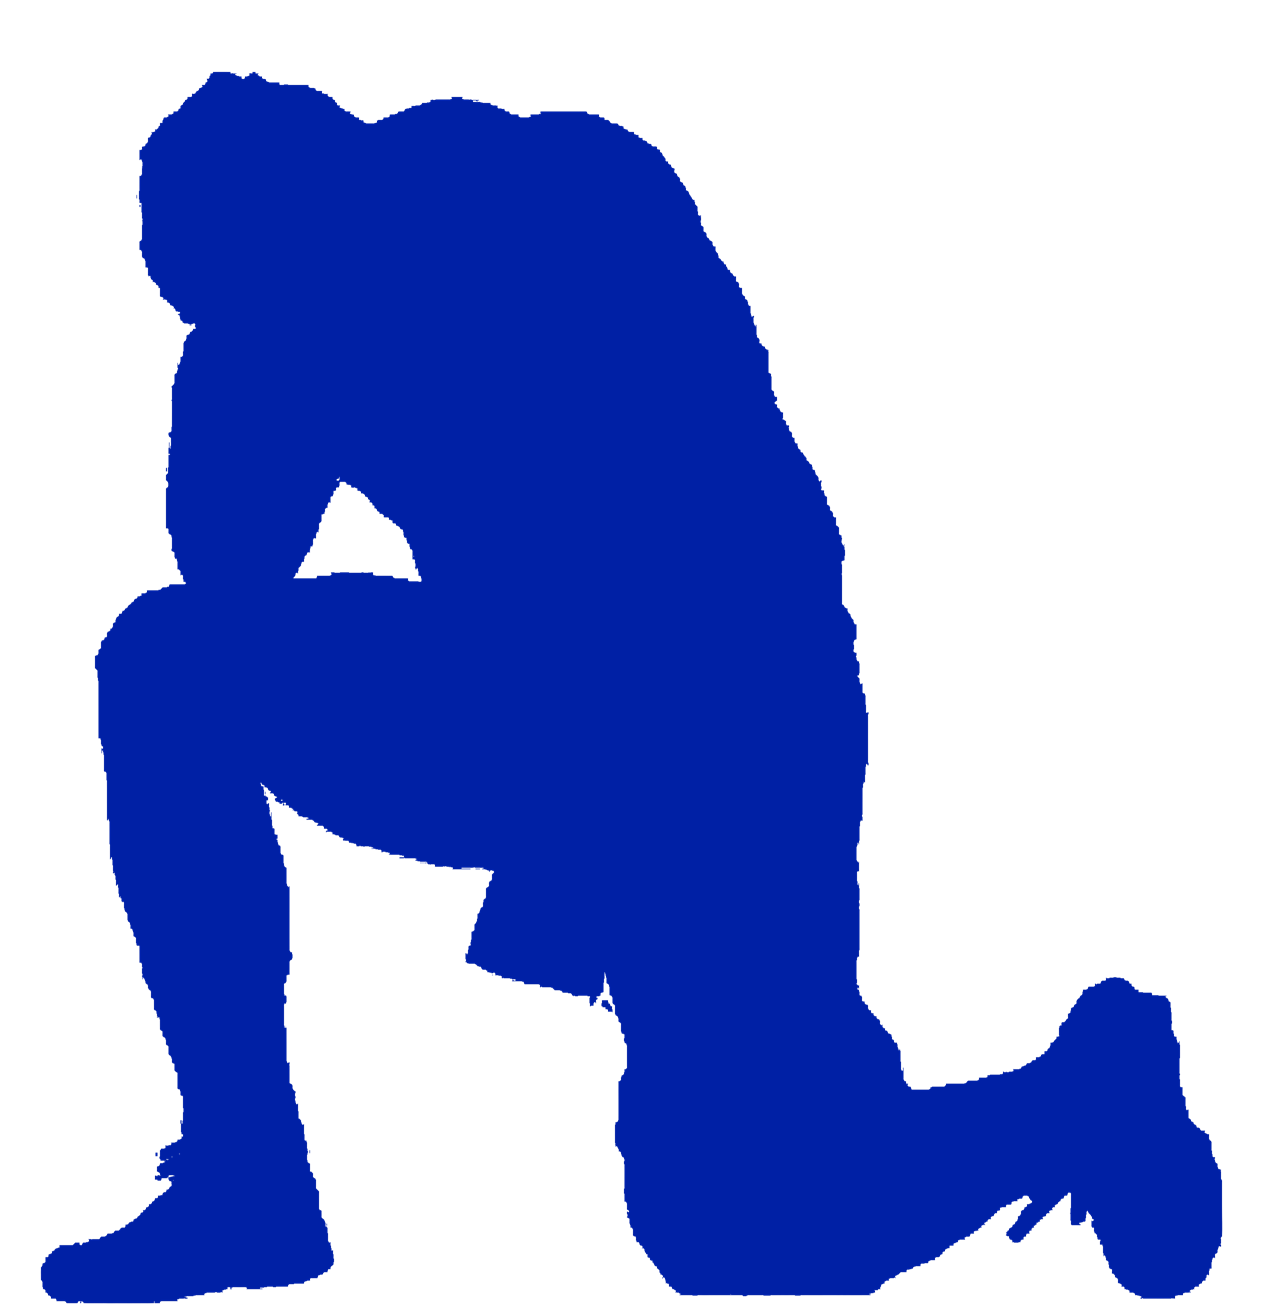 Tebowing - Tebowing PNG